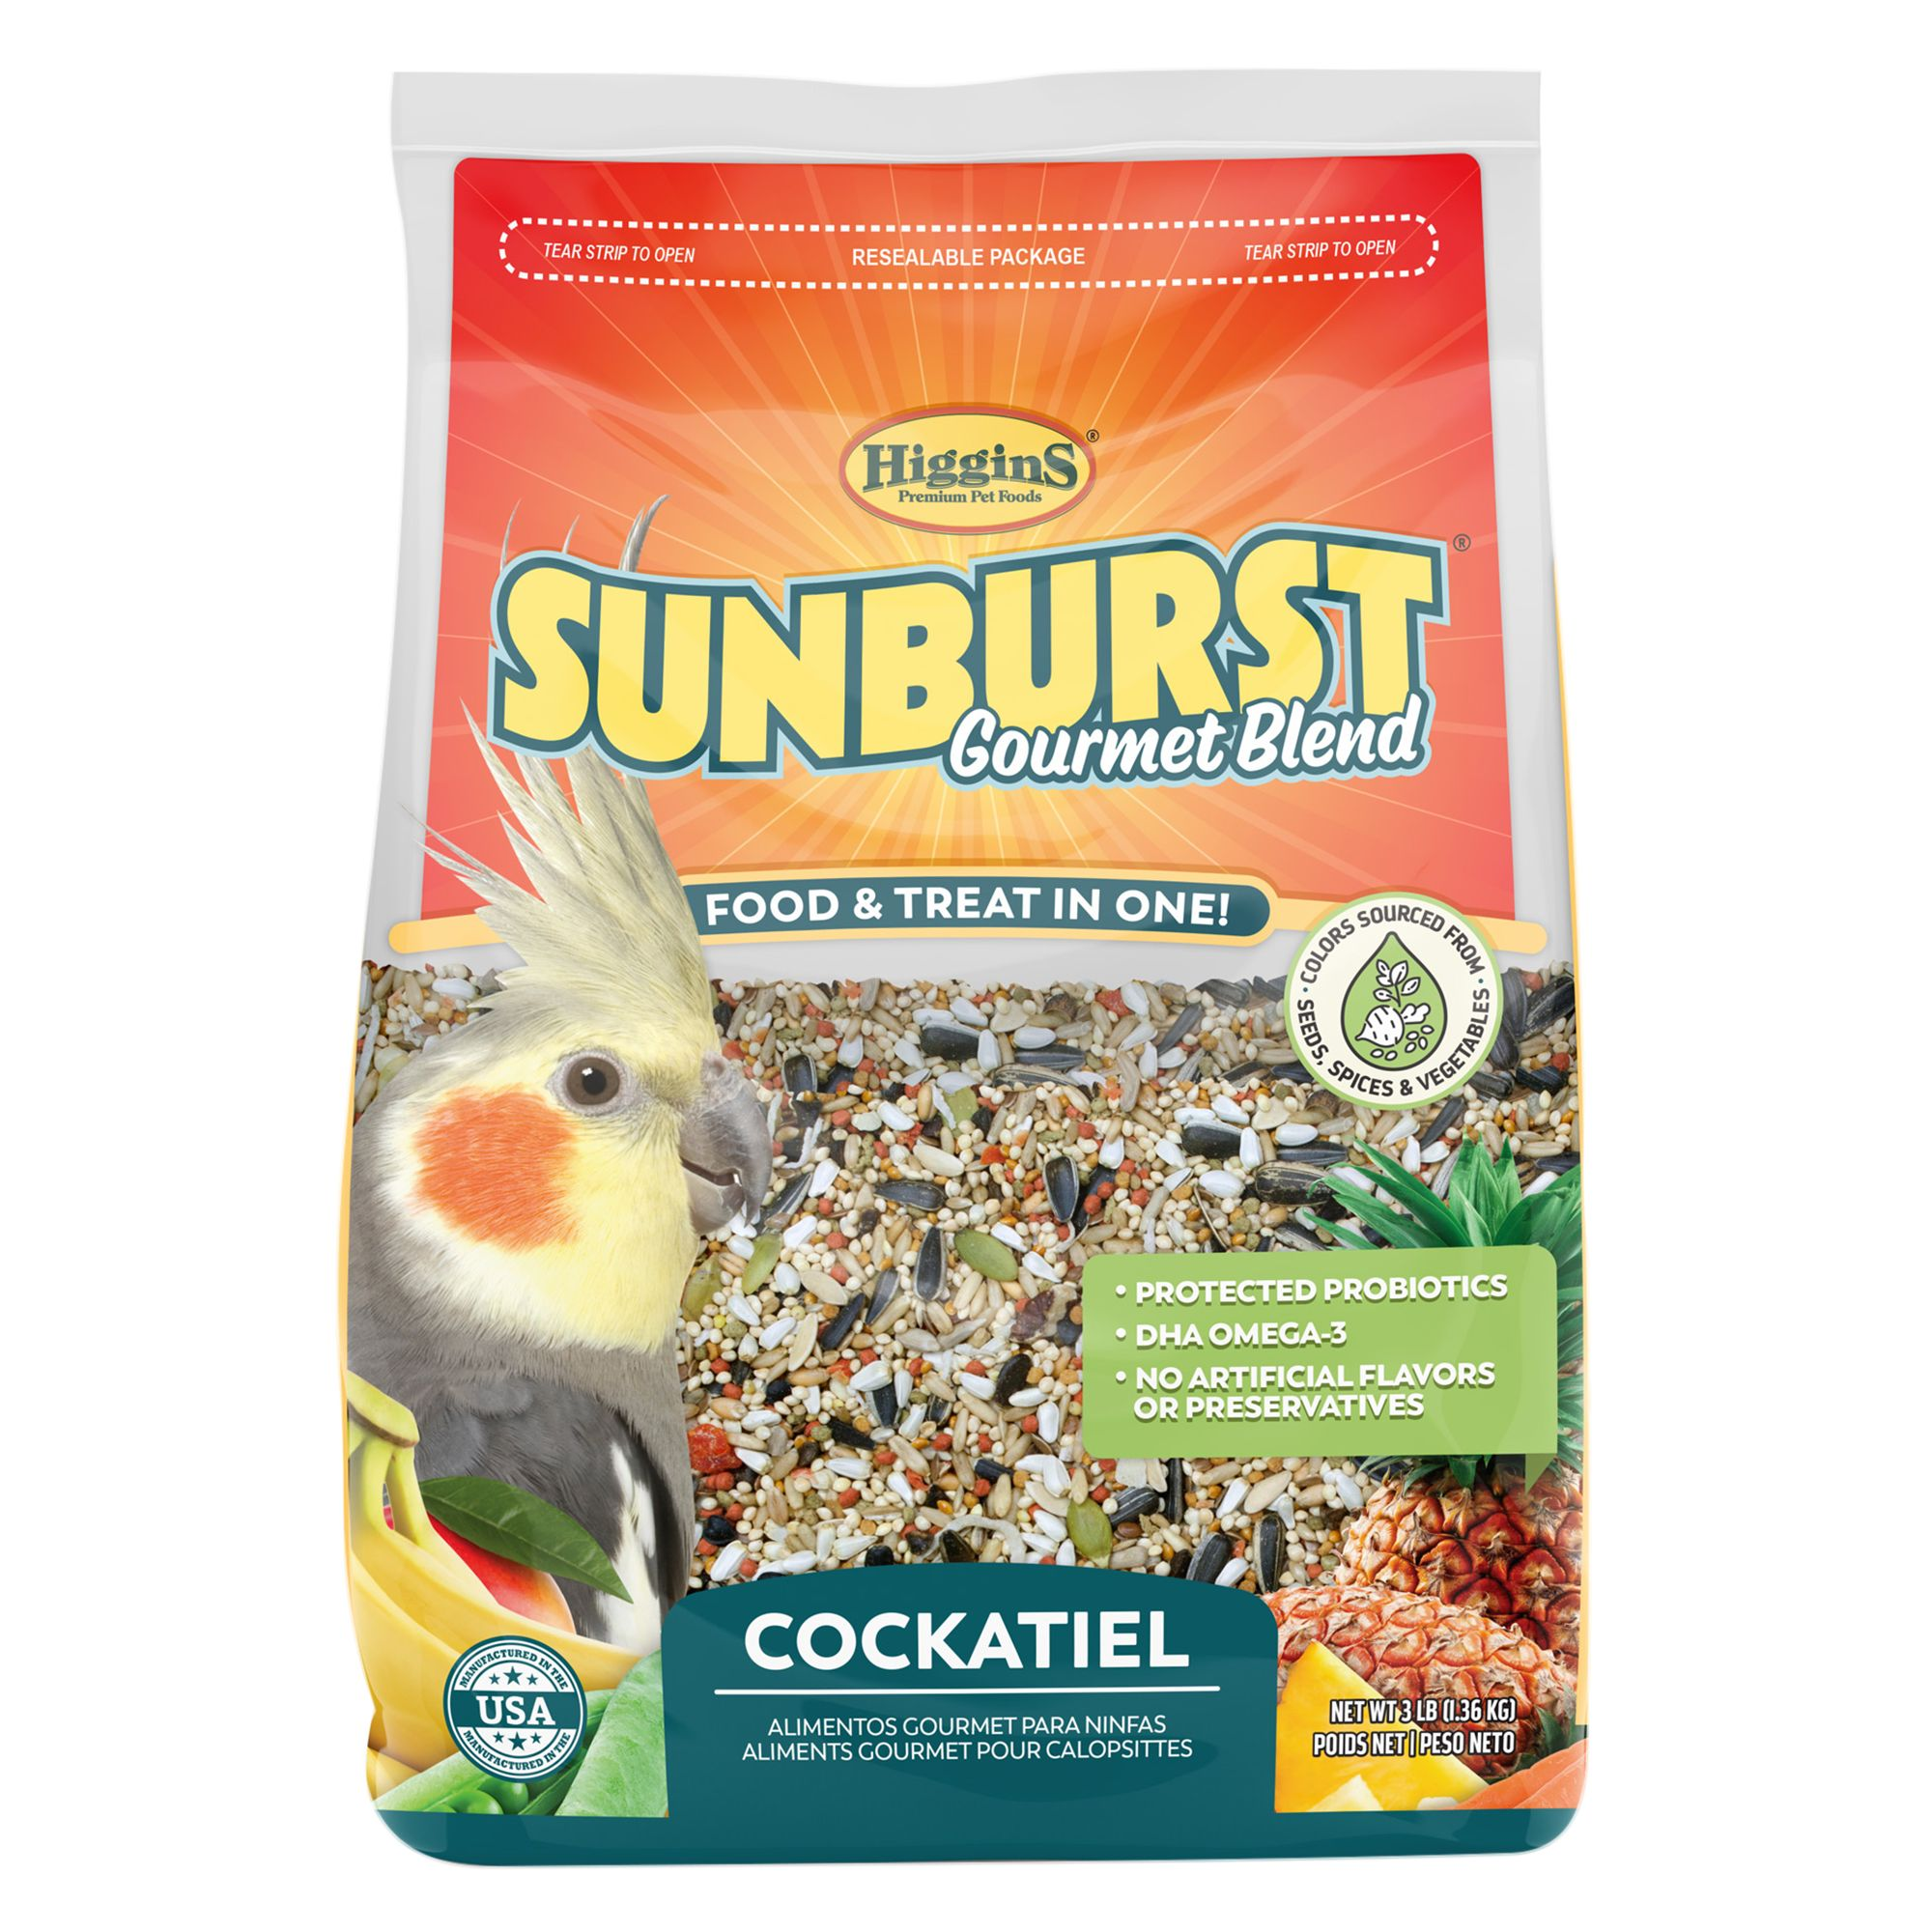 Higgins Sunburst Gourmet Blend Cockatiel Food size: 3 Lb 5261394